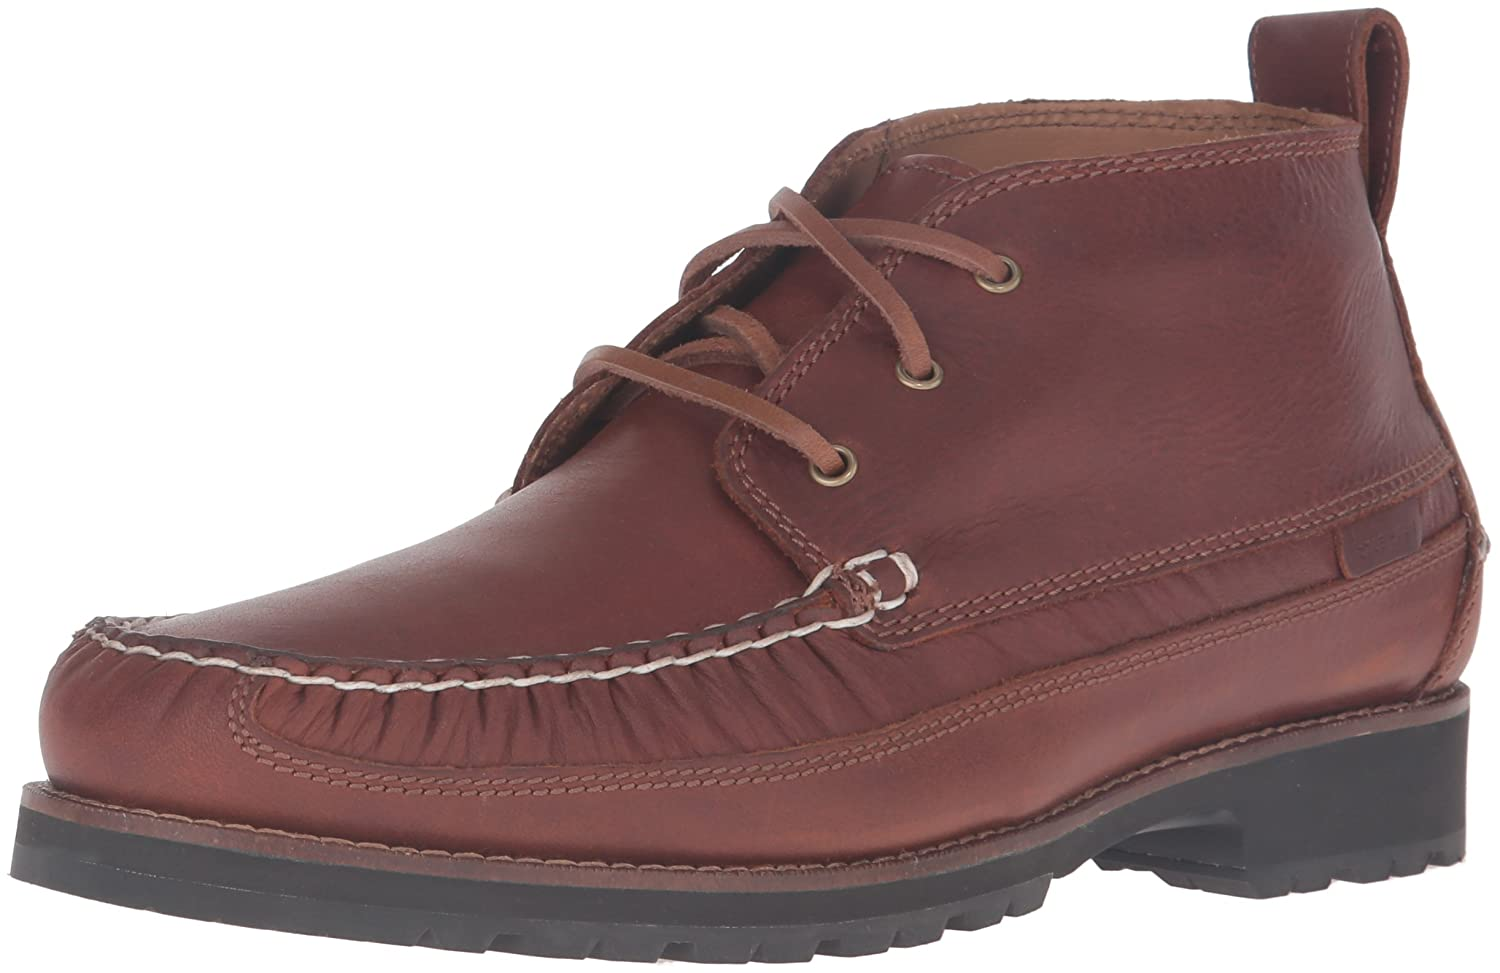 Cole Haan Men's Connery Moctoe Chukka Boot